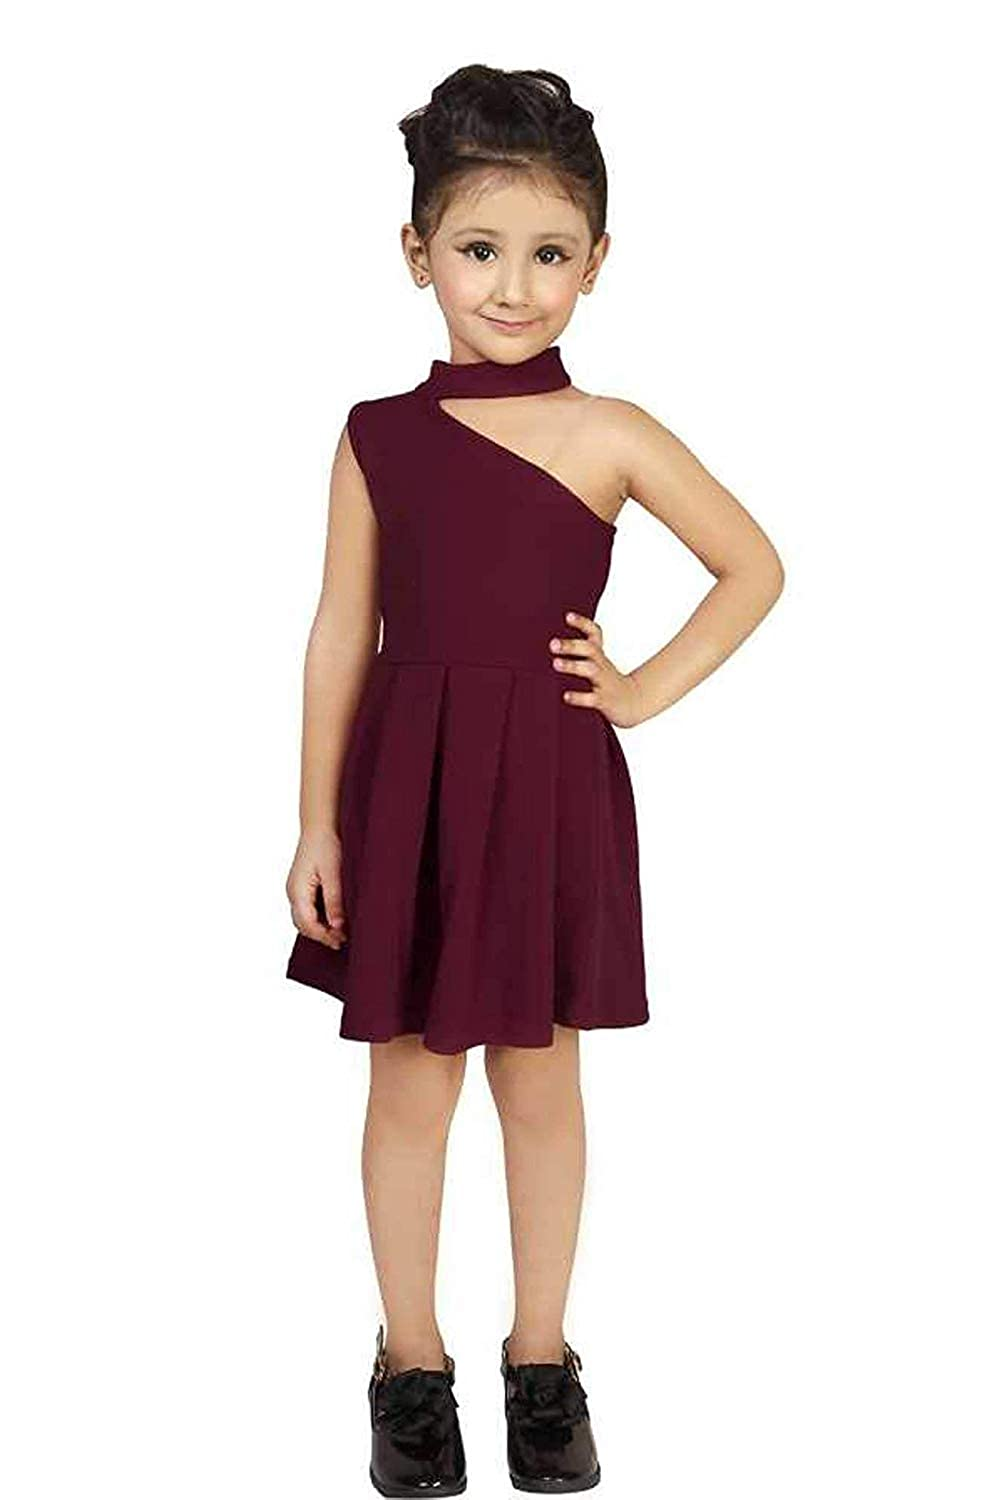 OMNI TRENDS Frogs for Girls   One Peice   Beautiful Elegant Latest Modern  Girls Dresses, Festival   for Kids 18 18 Years